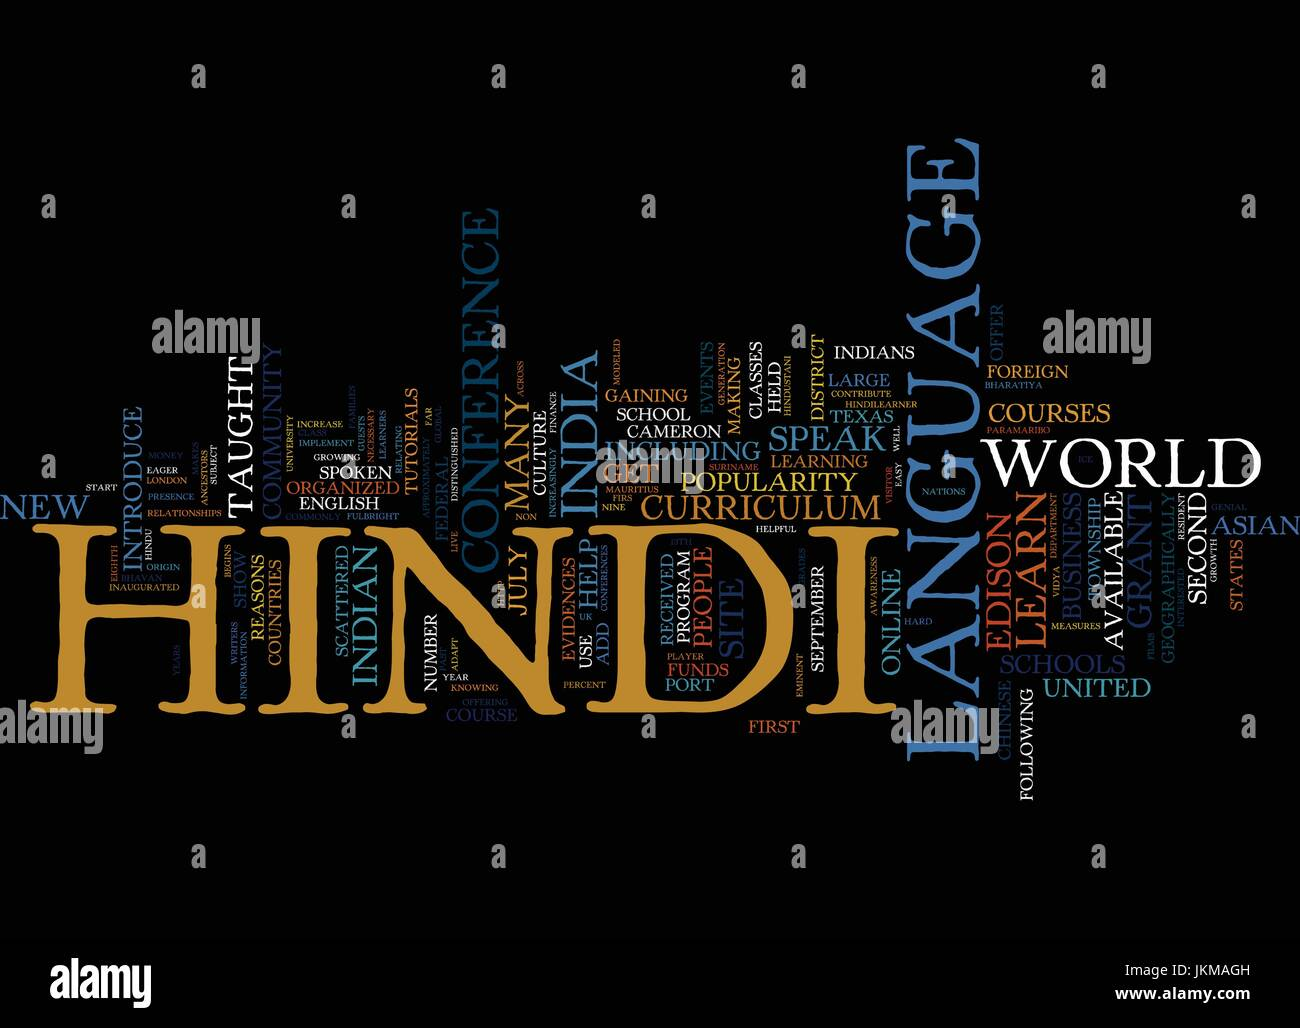 LEARN HINDI LANGUAGE ONLINE Text Background Word Cloud Concept Stock